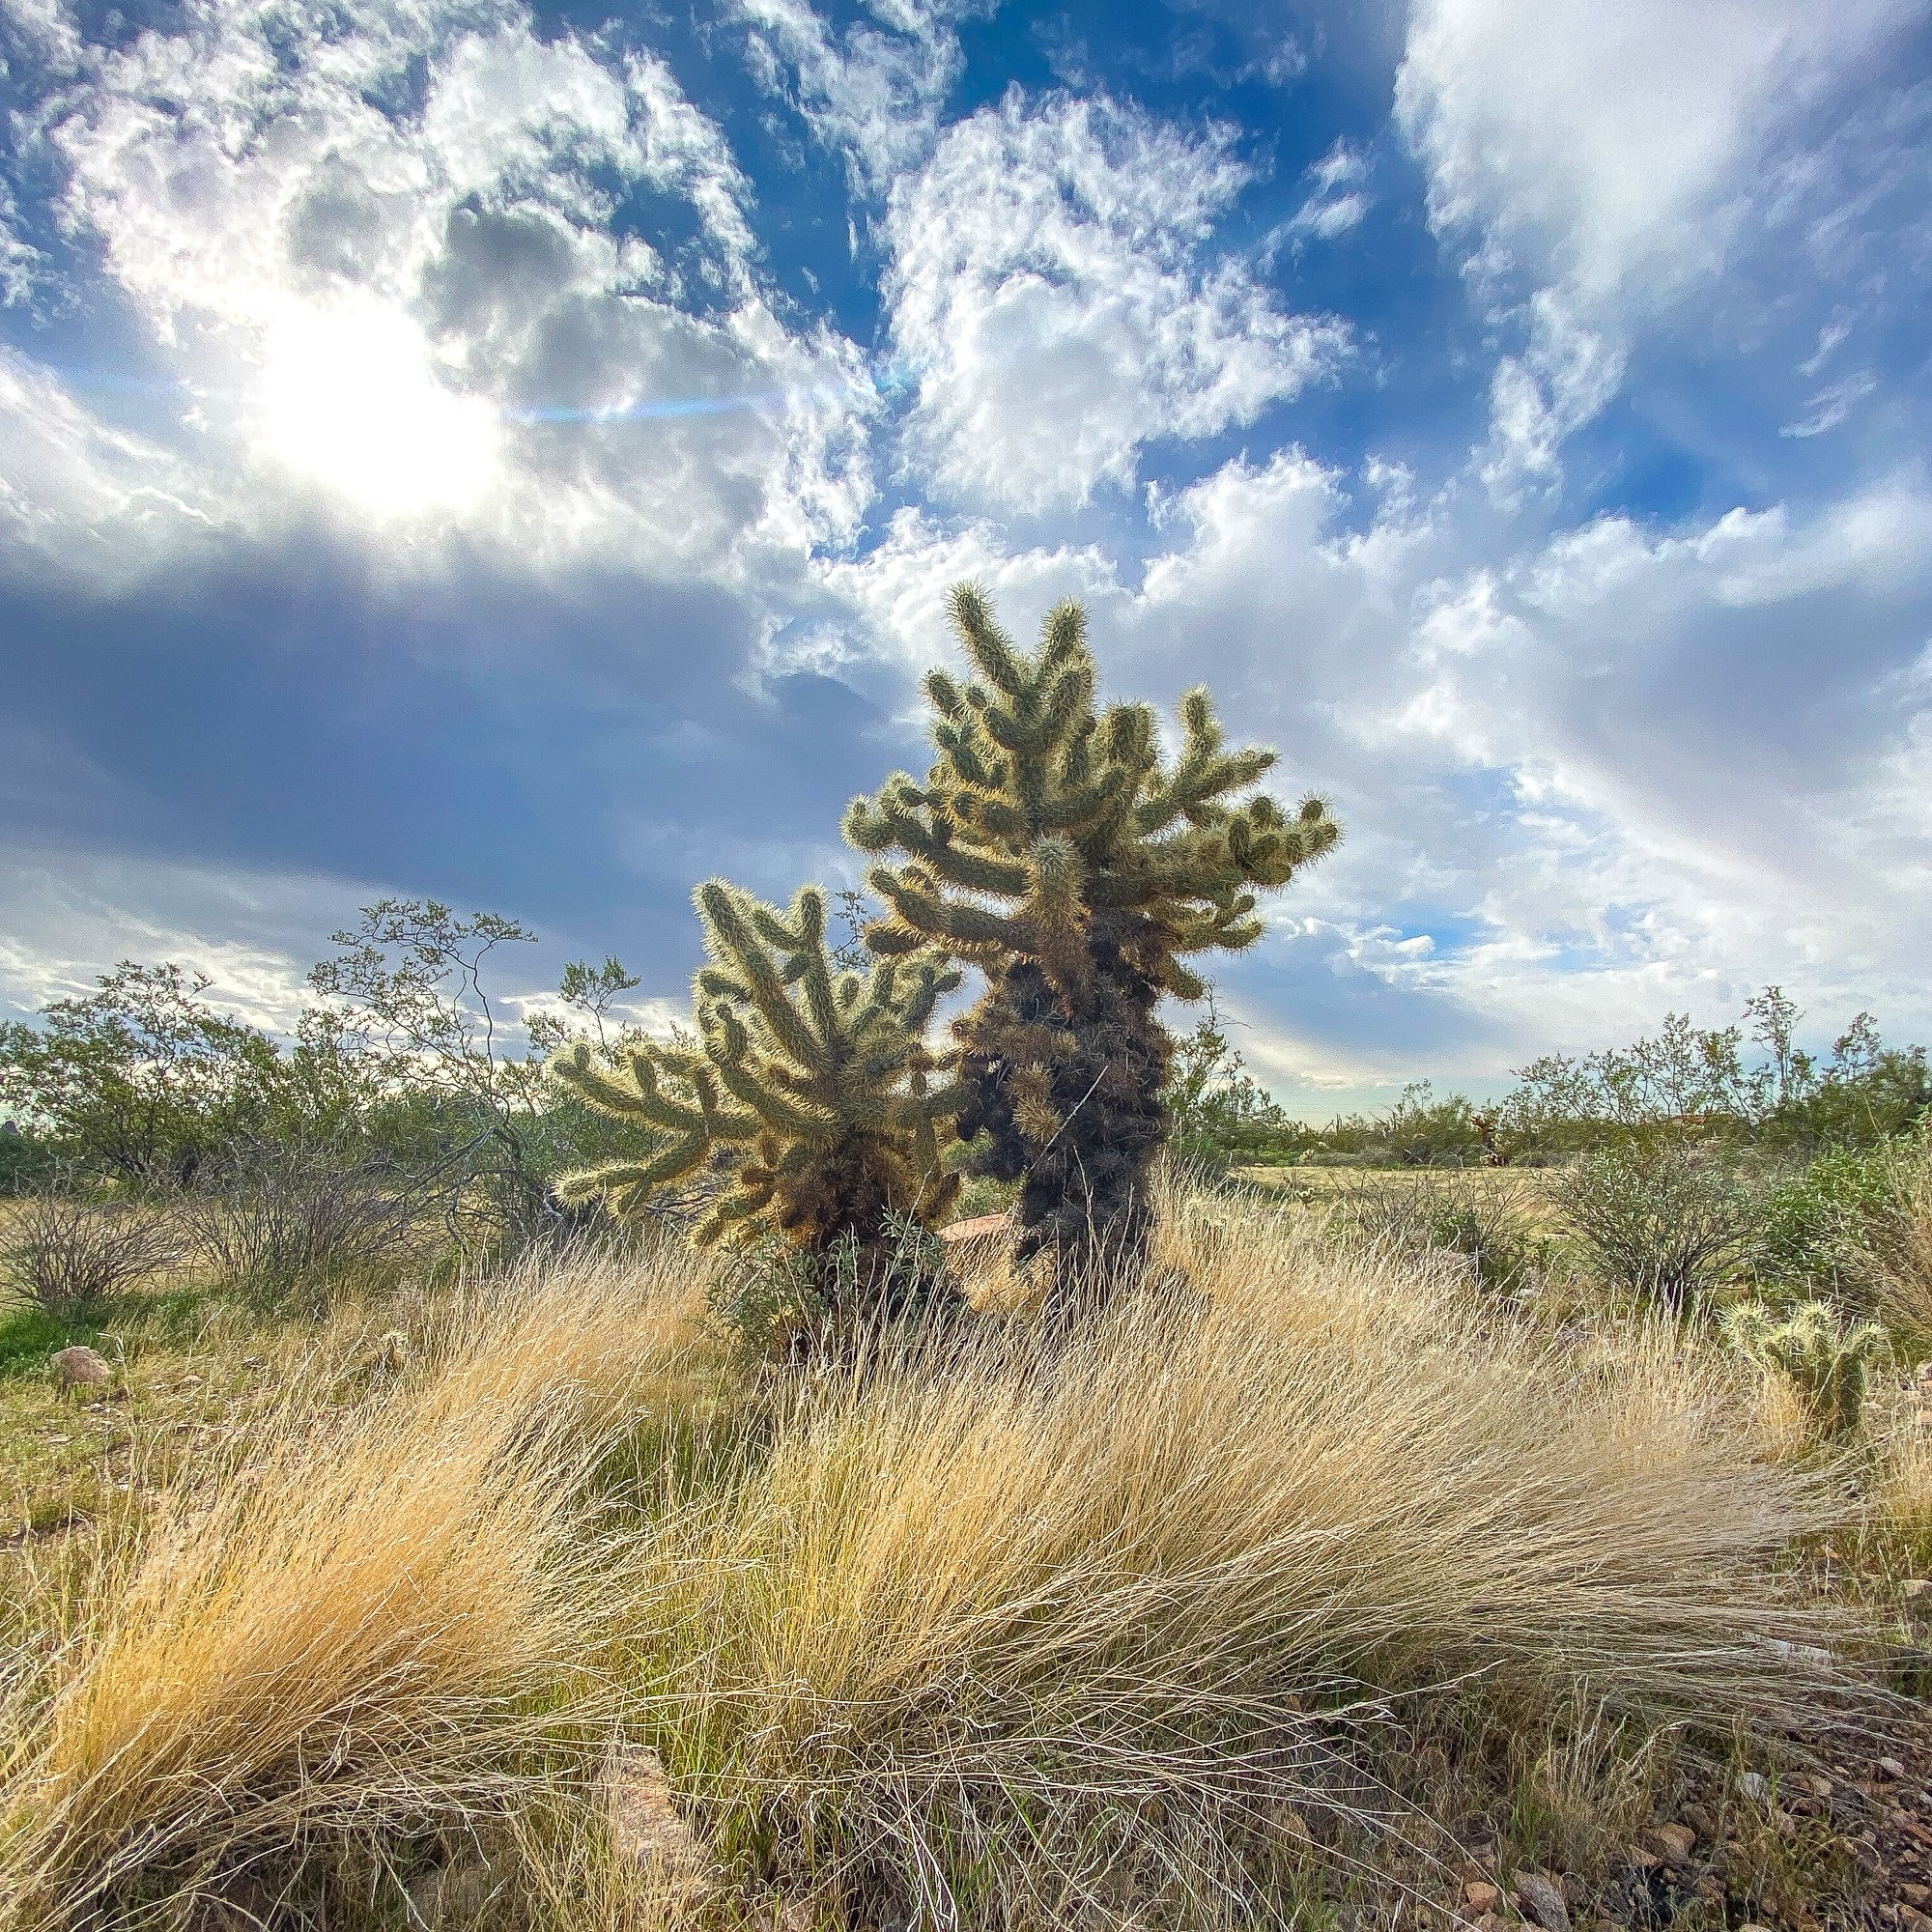 Cholla cactus in the McDowell Mountain Preserve in Scottsdale, Arizona